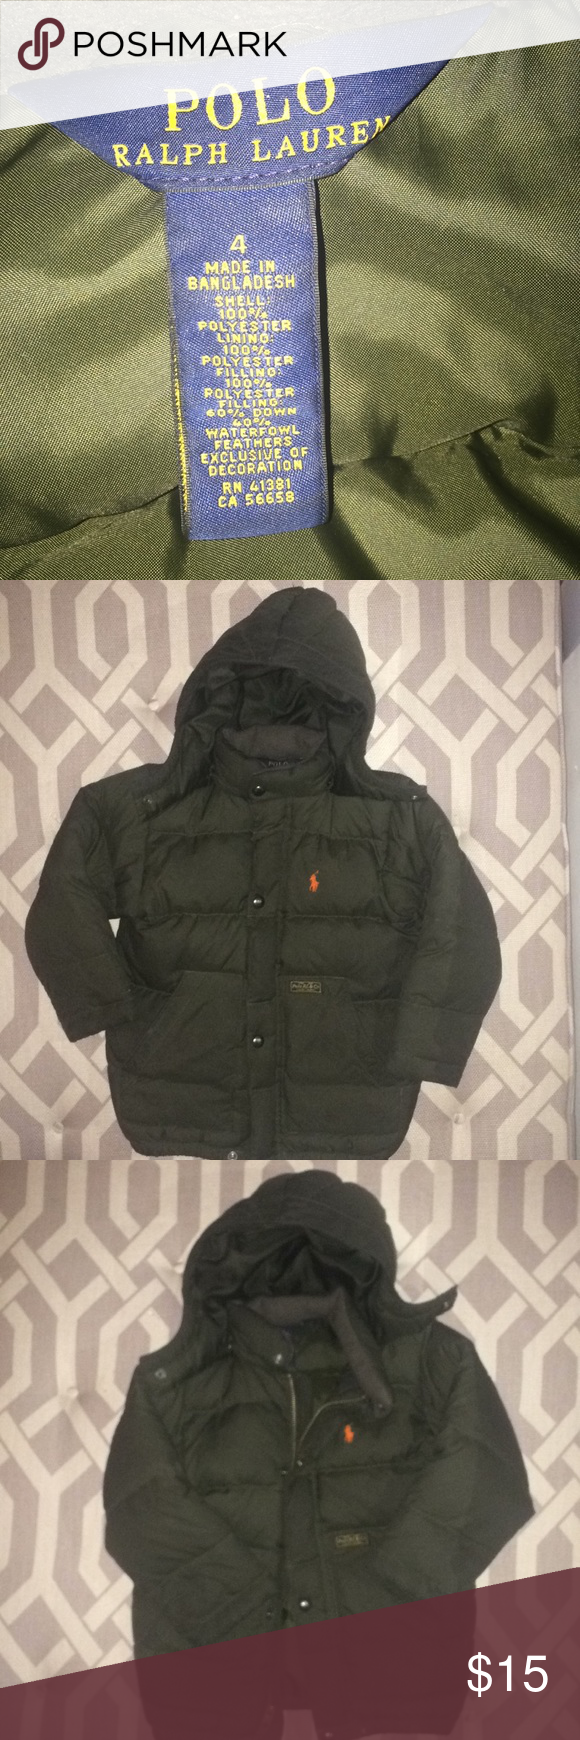 2eac1f9f8 Boys' Ralph Lauren Polo Down Puffer Jacket, Size 4 This is a classic! Super  warm army green down jacket. Great condition. Worn a few time during one  winter ...